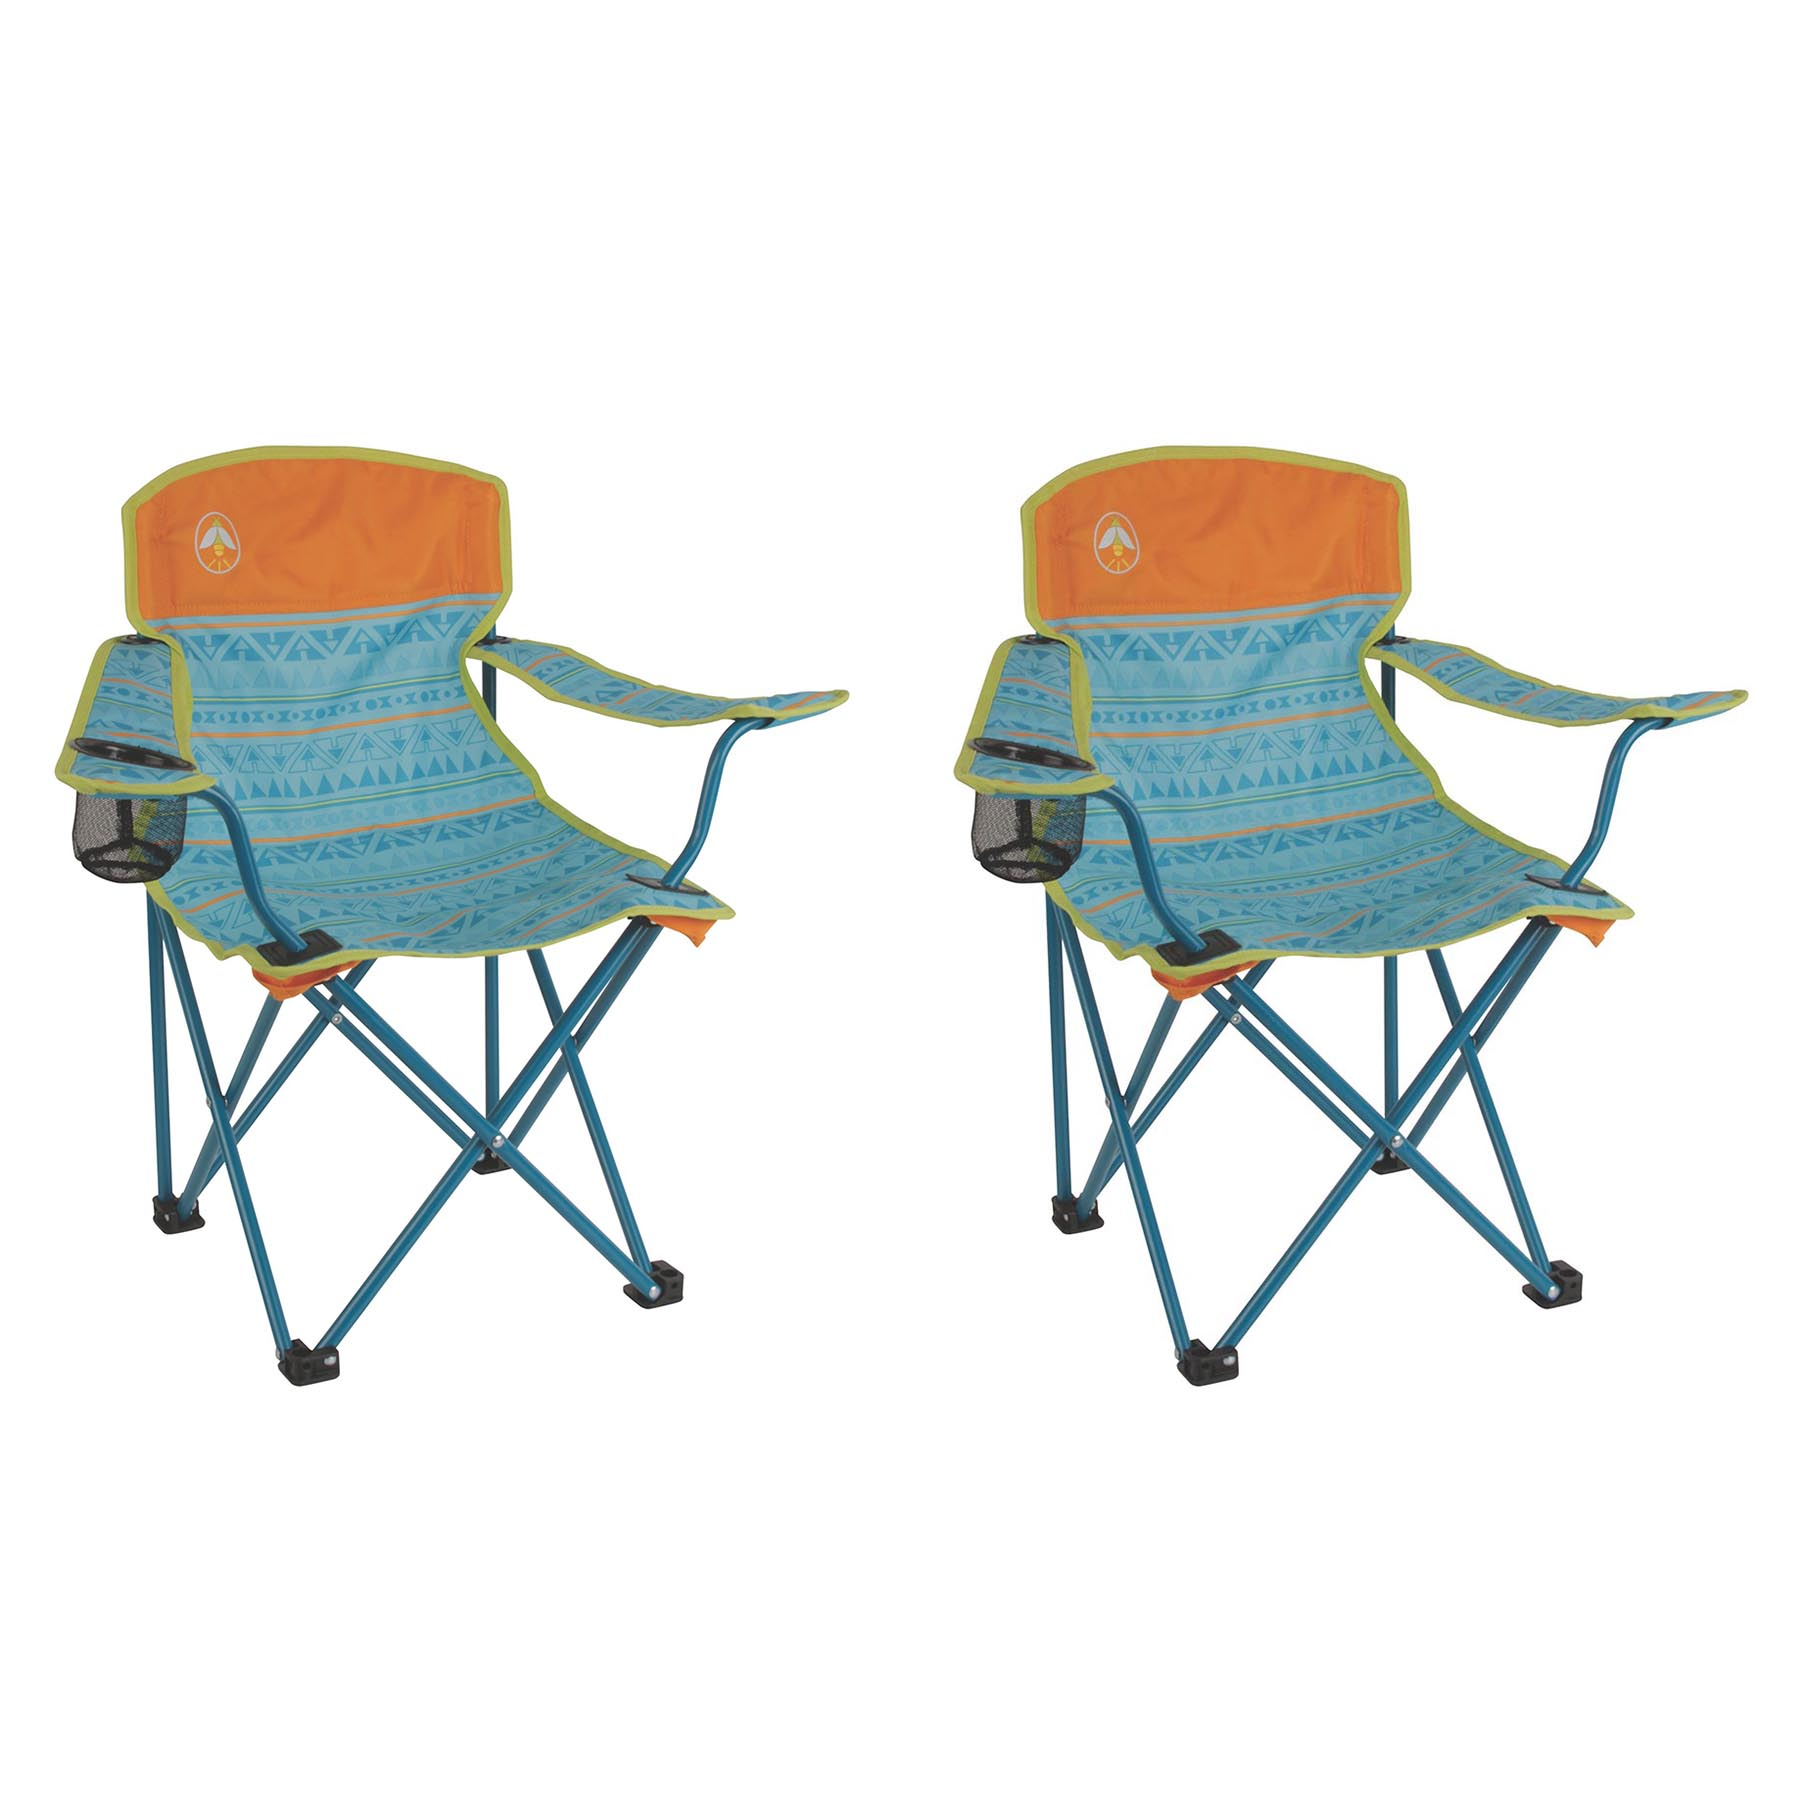 Coleman Kids Camping Glow In The Dark Teal Quad Chairs (2 Pack